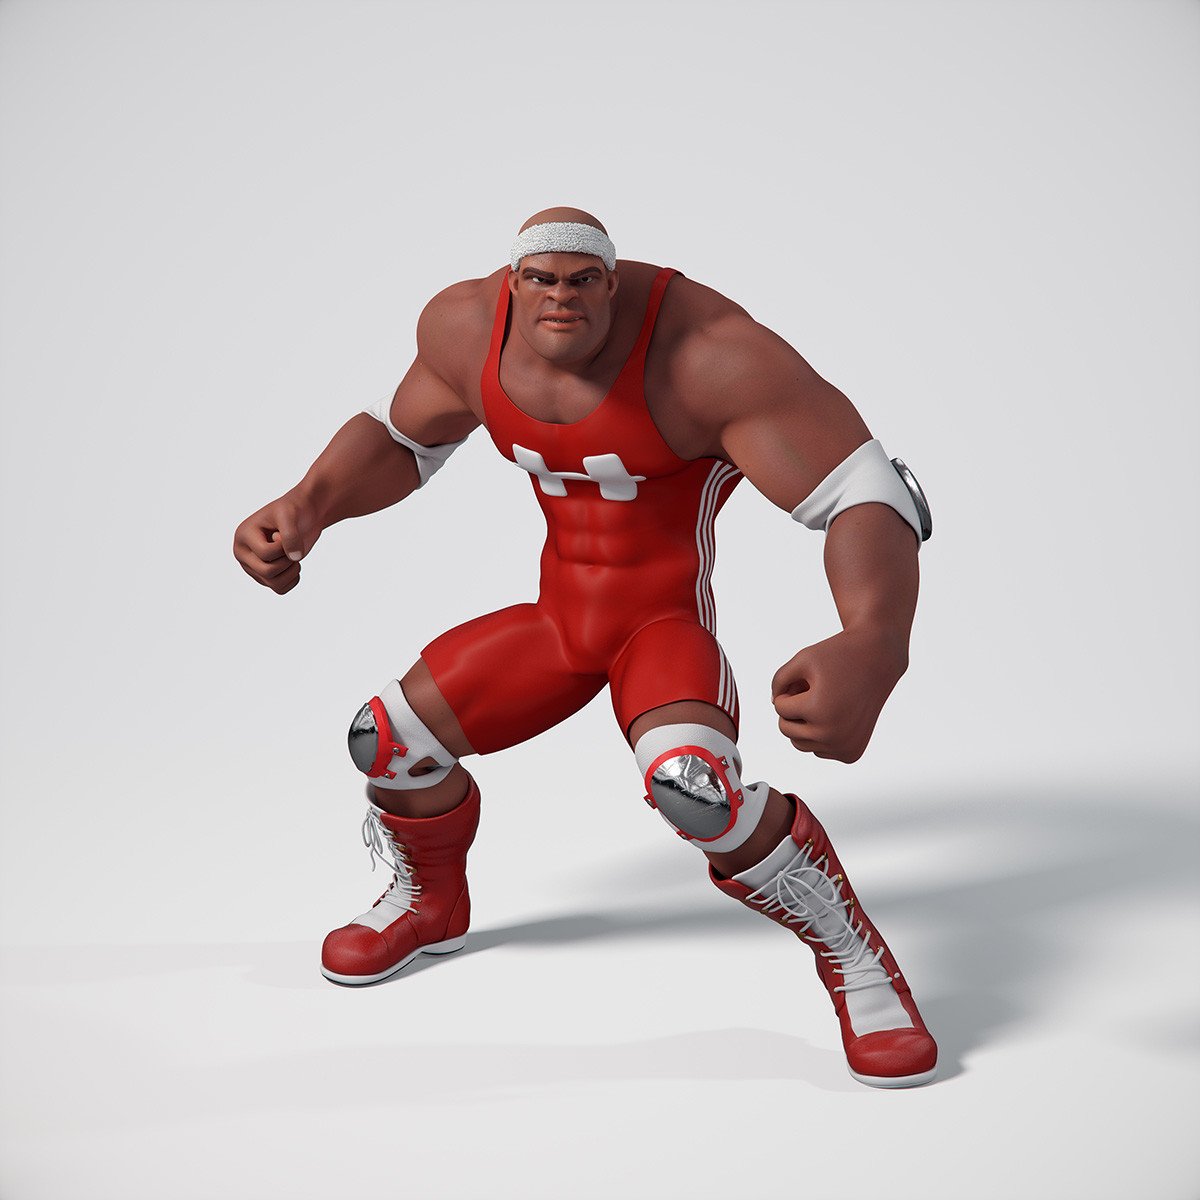 Cgmonkeyking dumbbell poses test02 pn pp 001